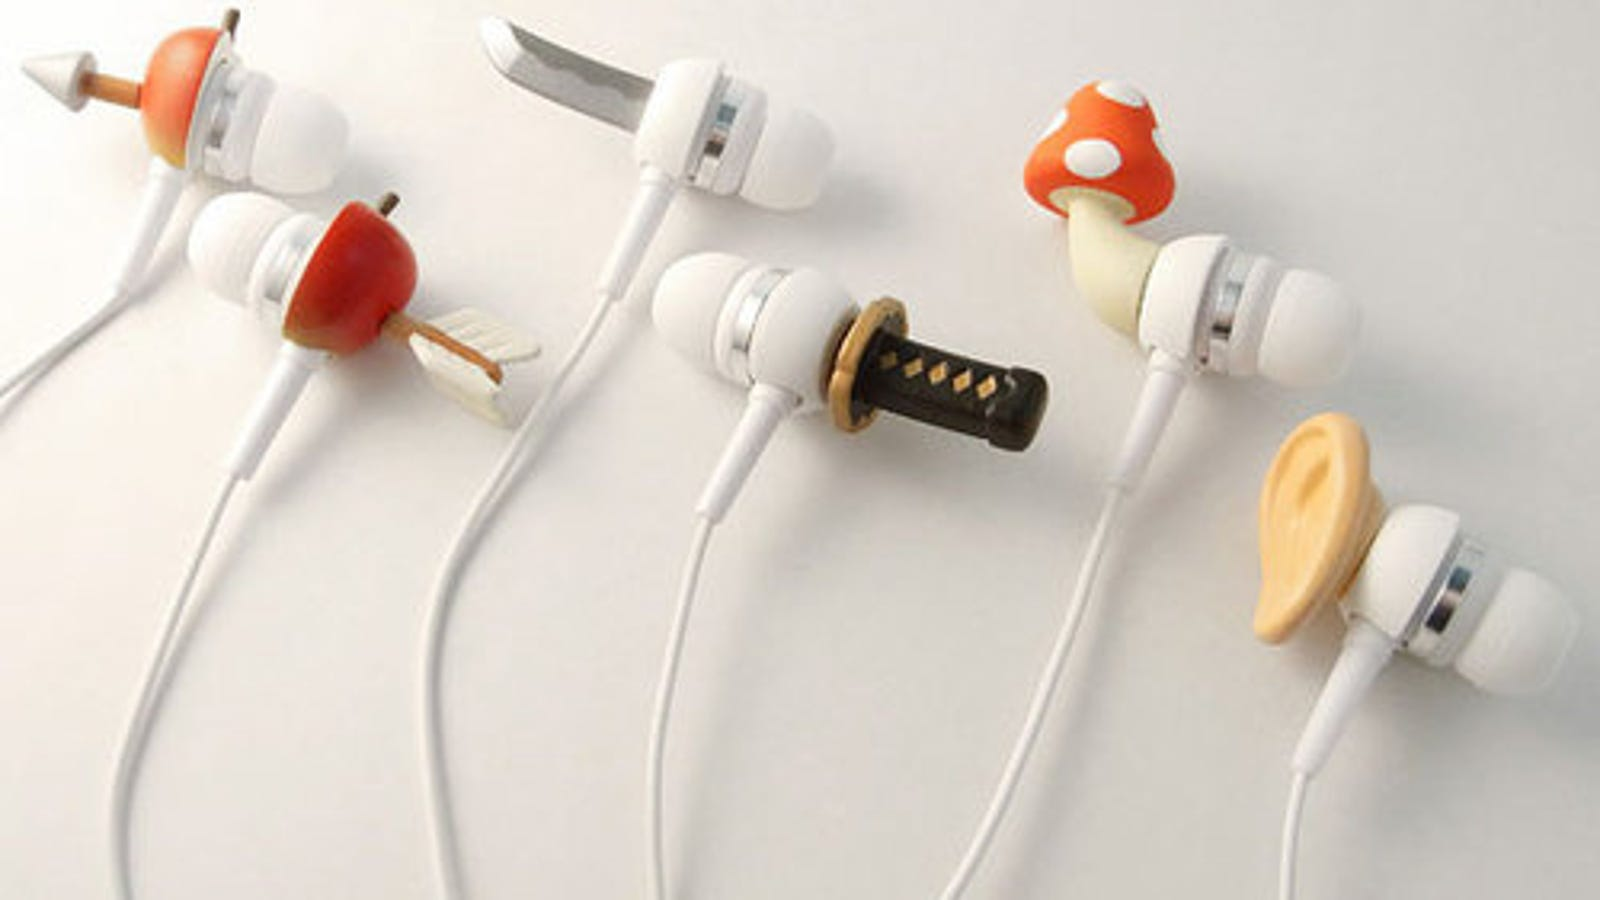 noise cancelling earbuds for sleep - Katana Earbuds Show the World How I Feel When I Listen to LFO